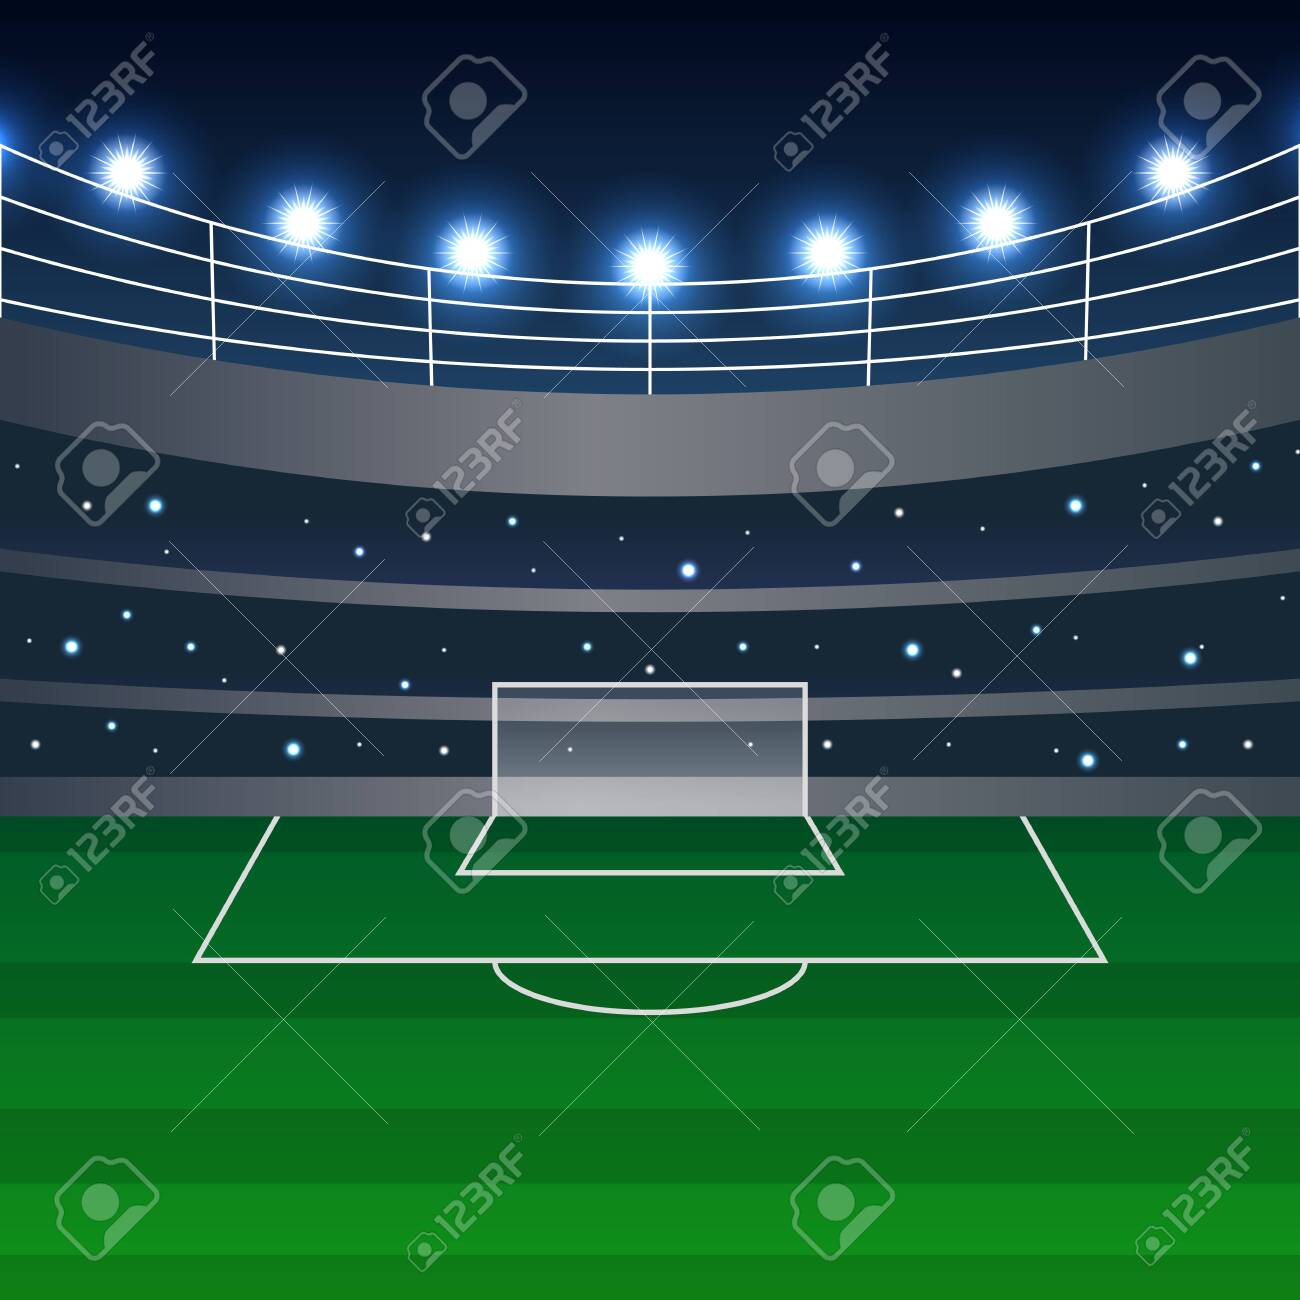 football stadium background royalty free cliparts vectors and stock illustration image 124171162 123rf com